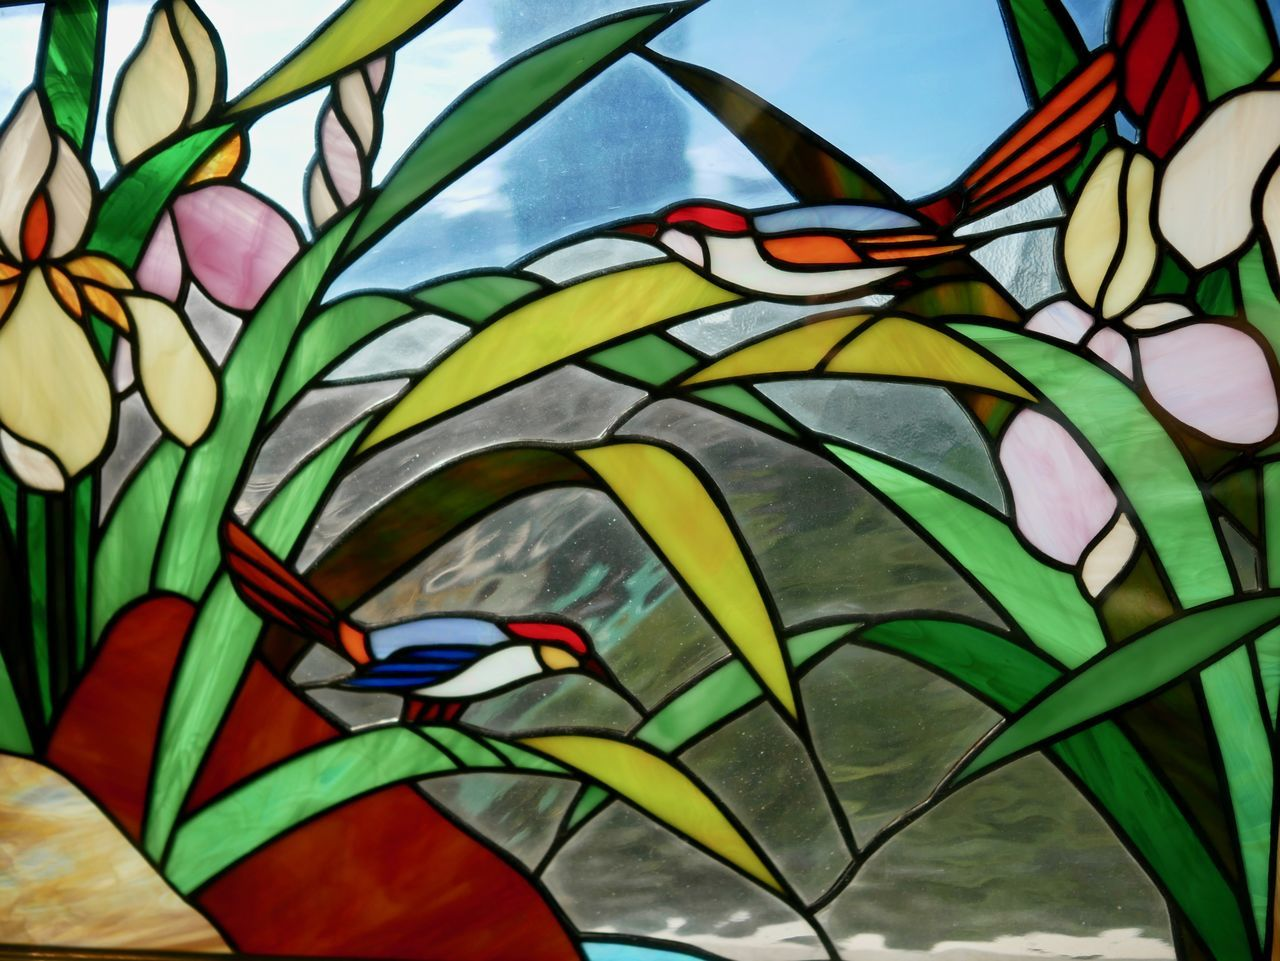 Close-up Day Glass Glass - Material Leaf Multi Colored No People Stained Glass Window Urban Windows Adapted To The City